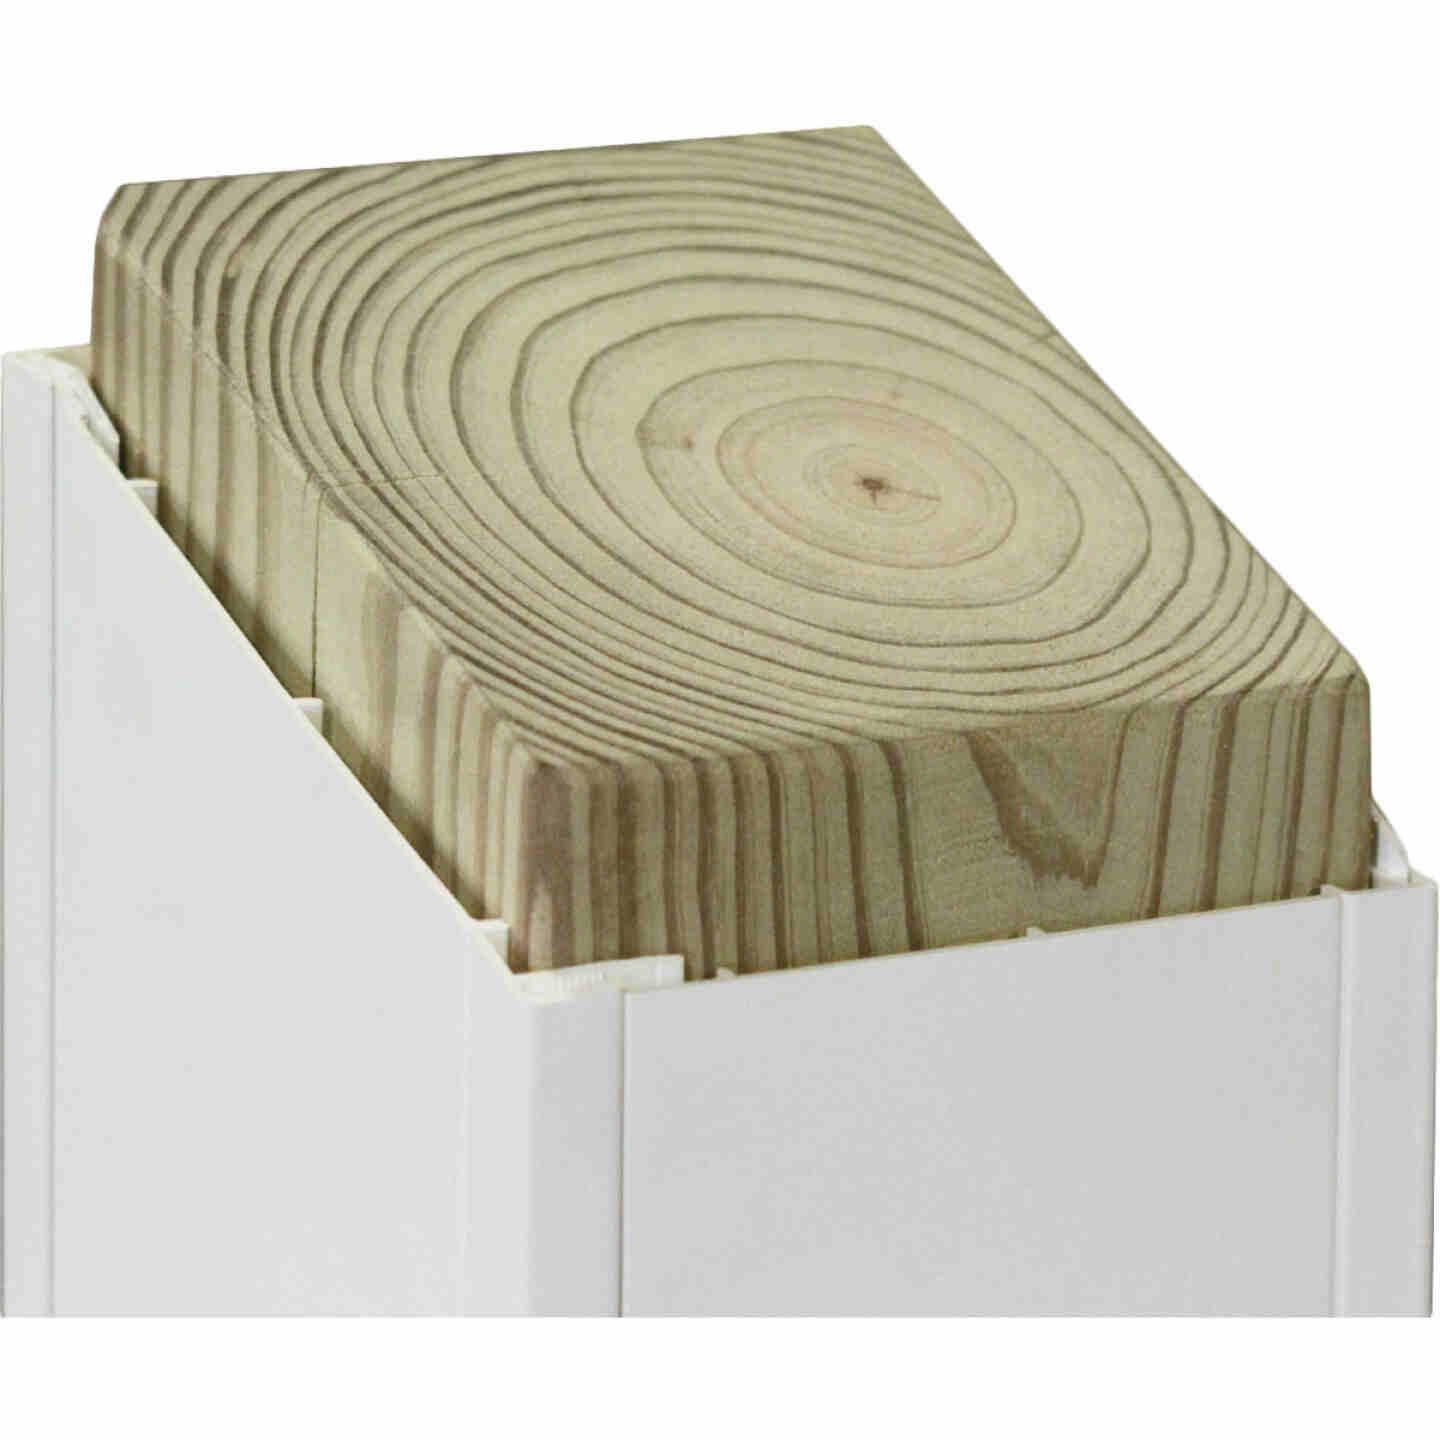 Beechdale 6 In. W. x 6 In. H. x 120 In. L. White PVC Smooth Post Wrap Image 2